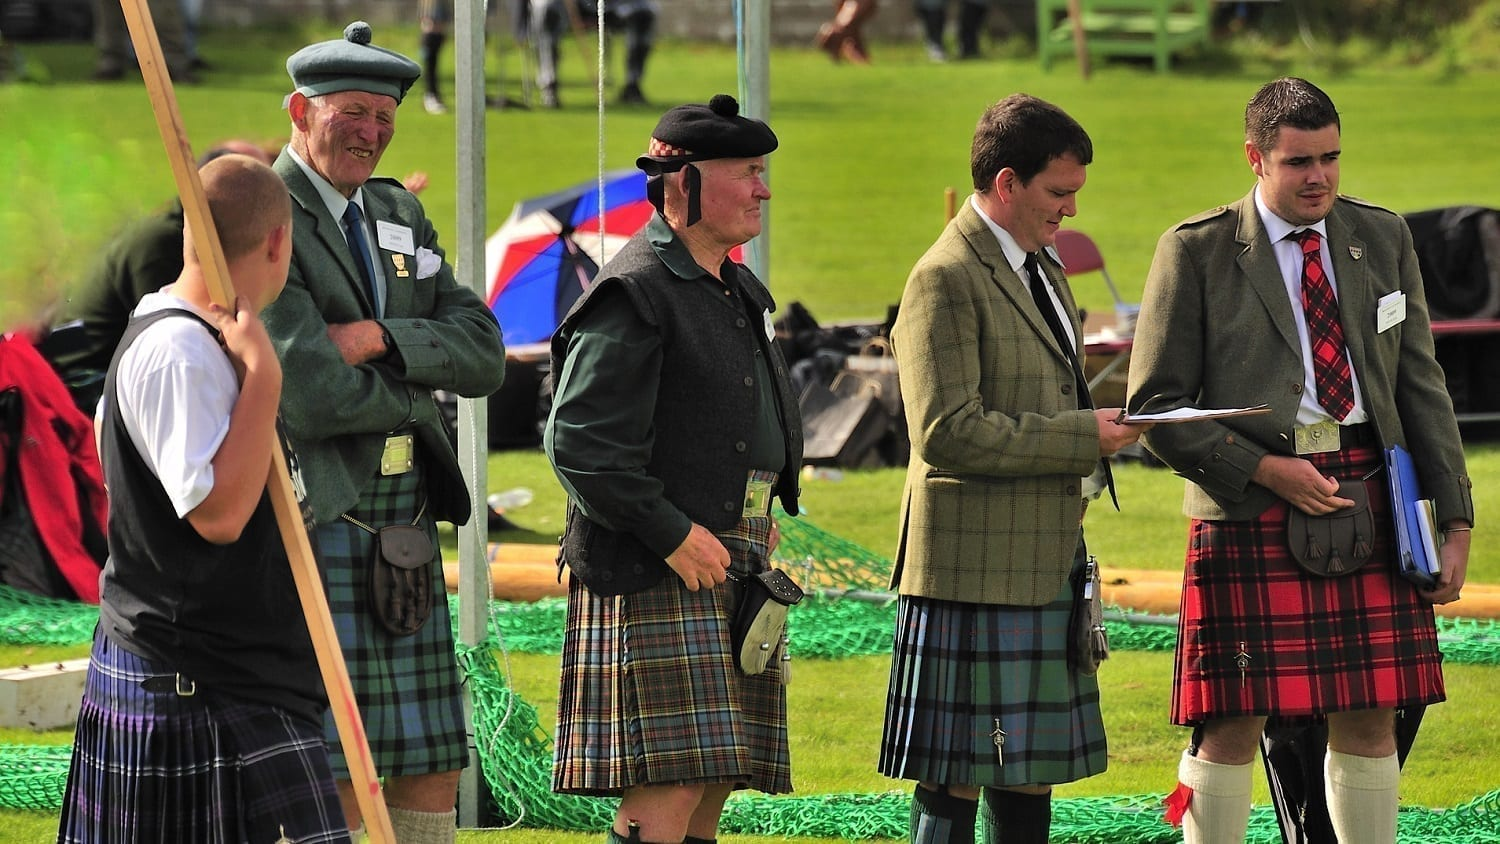 Group of Highland Games officials: Photo 30358268 © Bobbrooky | Dreamstime.com